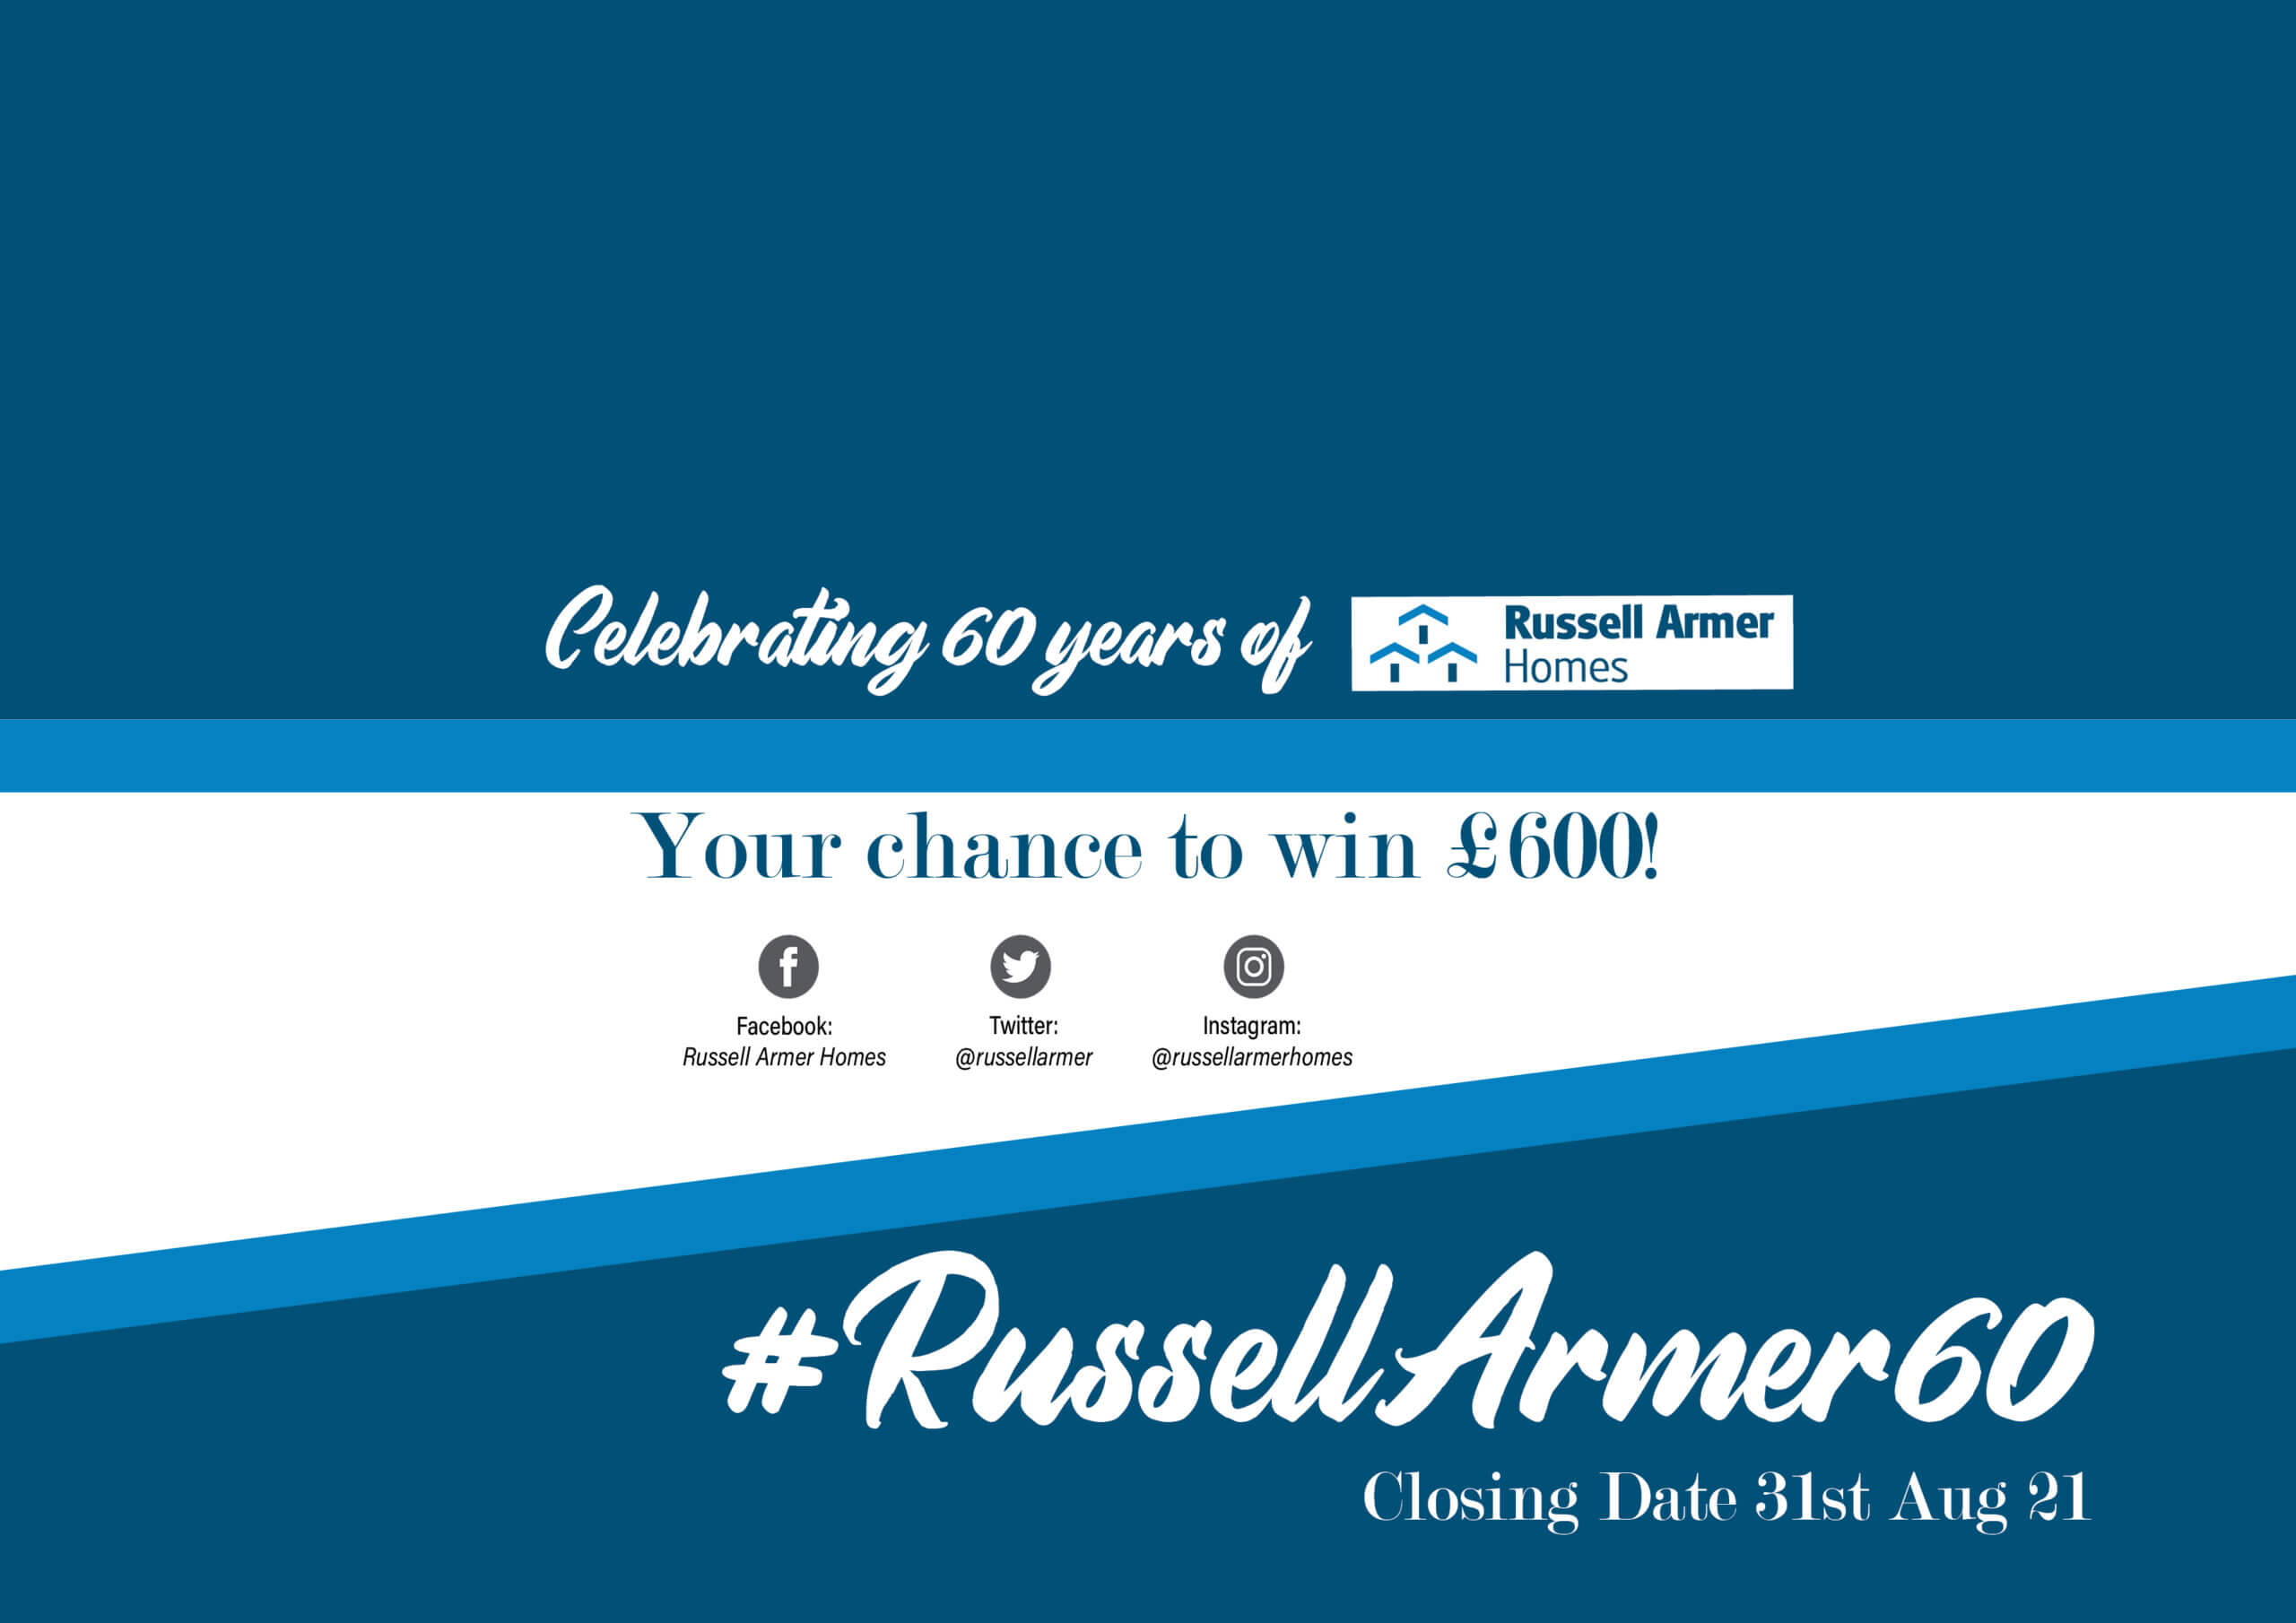 Competition launched to celebrate 60 years of home building